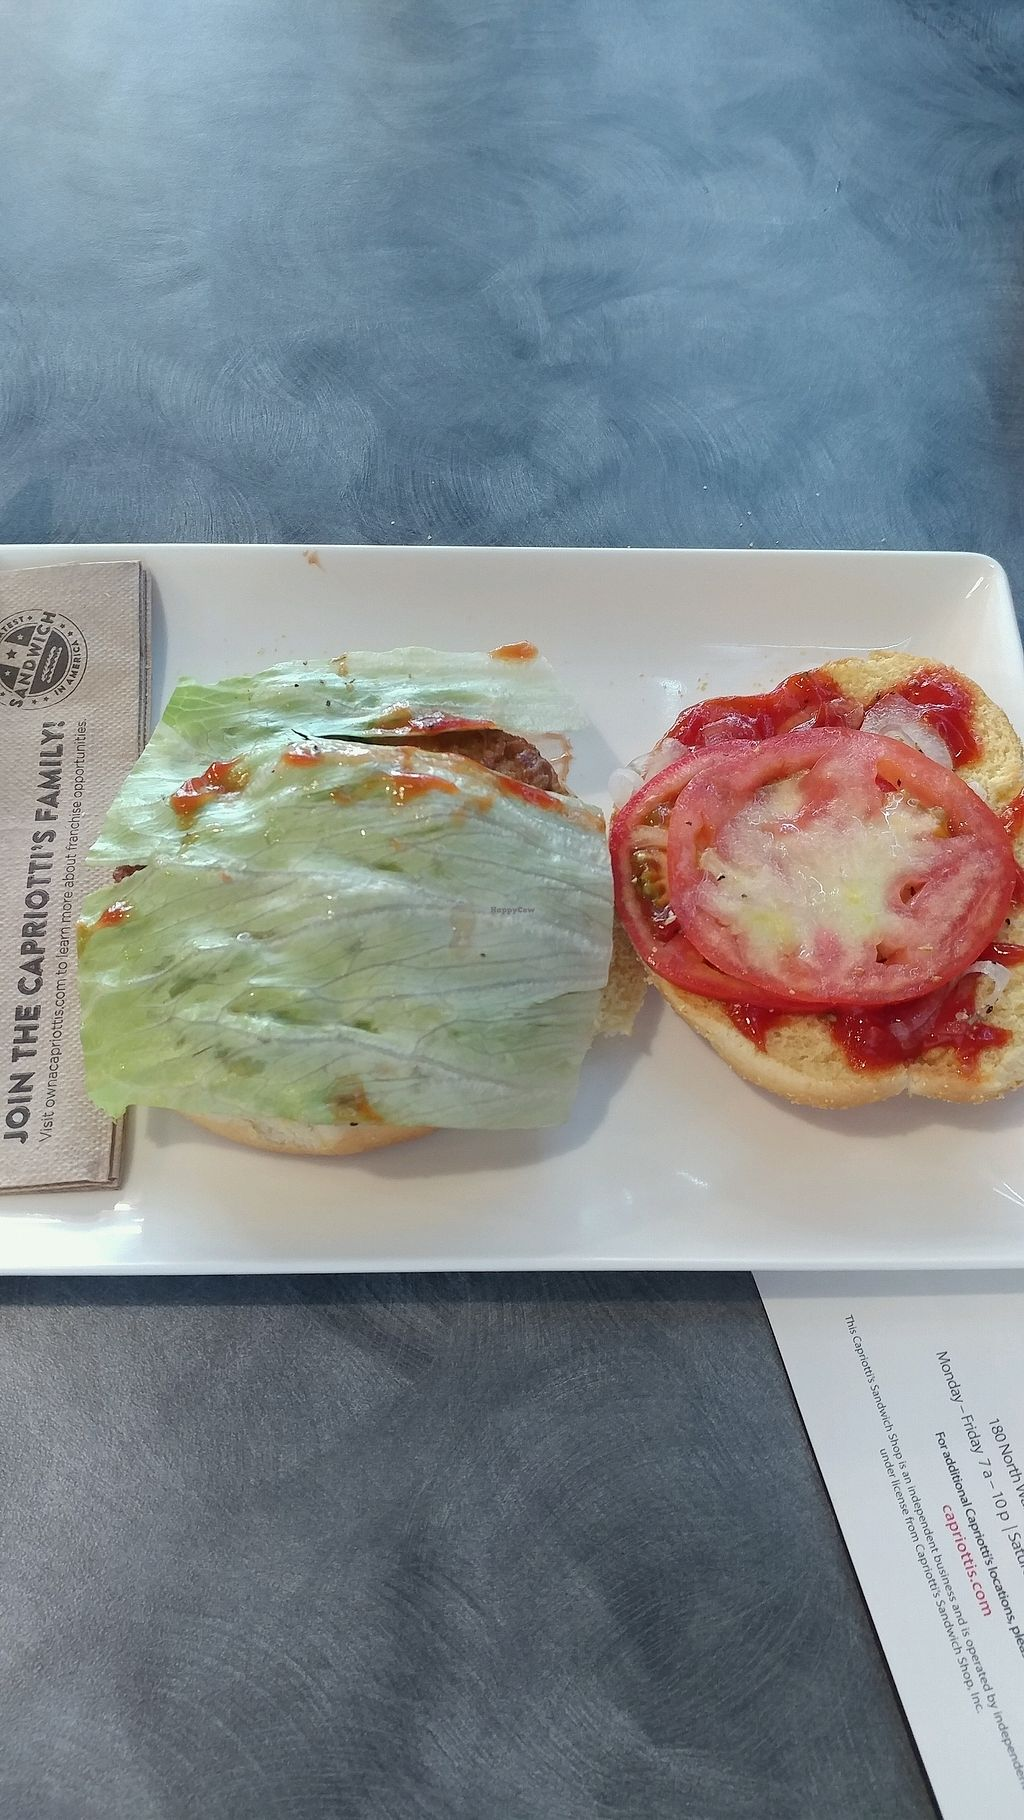 """Photo of Capriotti's Sandwich Shop  by <a href=""""/members/profile/mster9ball1"""">mster9ball1</a> <br/>veggie burger with all the fixings <br/> September 18, 2017  - <a href='/contact/abuse/image/82834/305813'>Report</a>"""